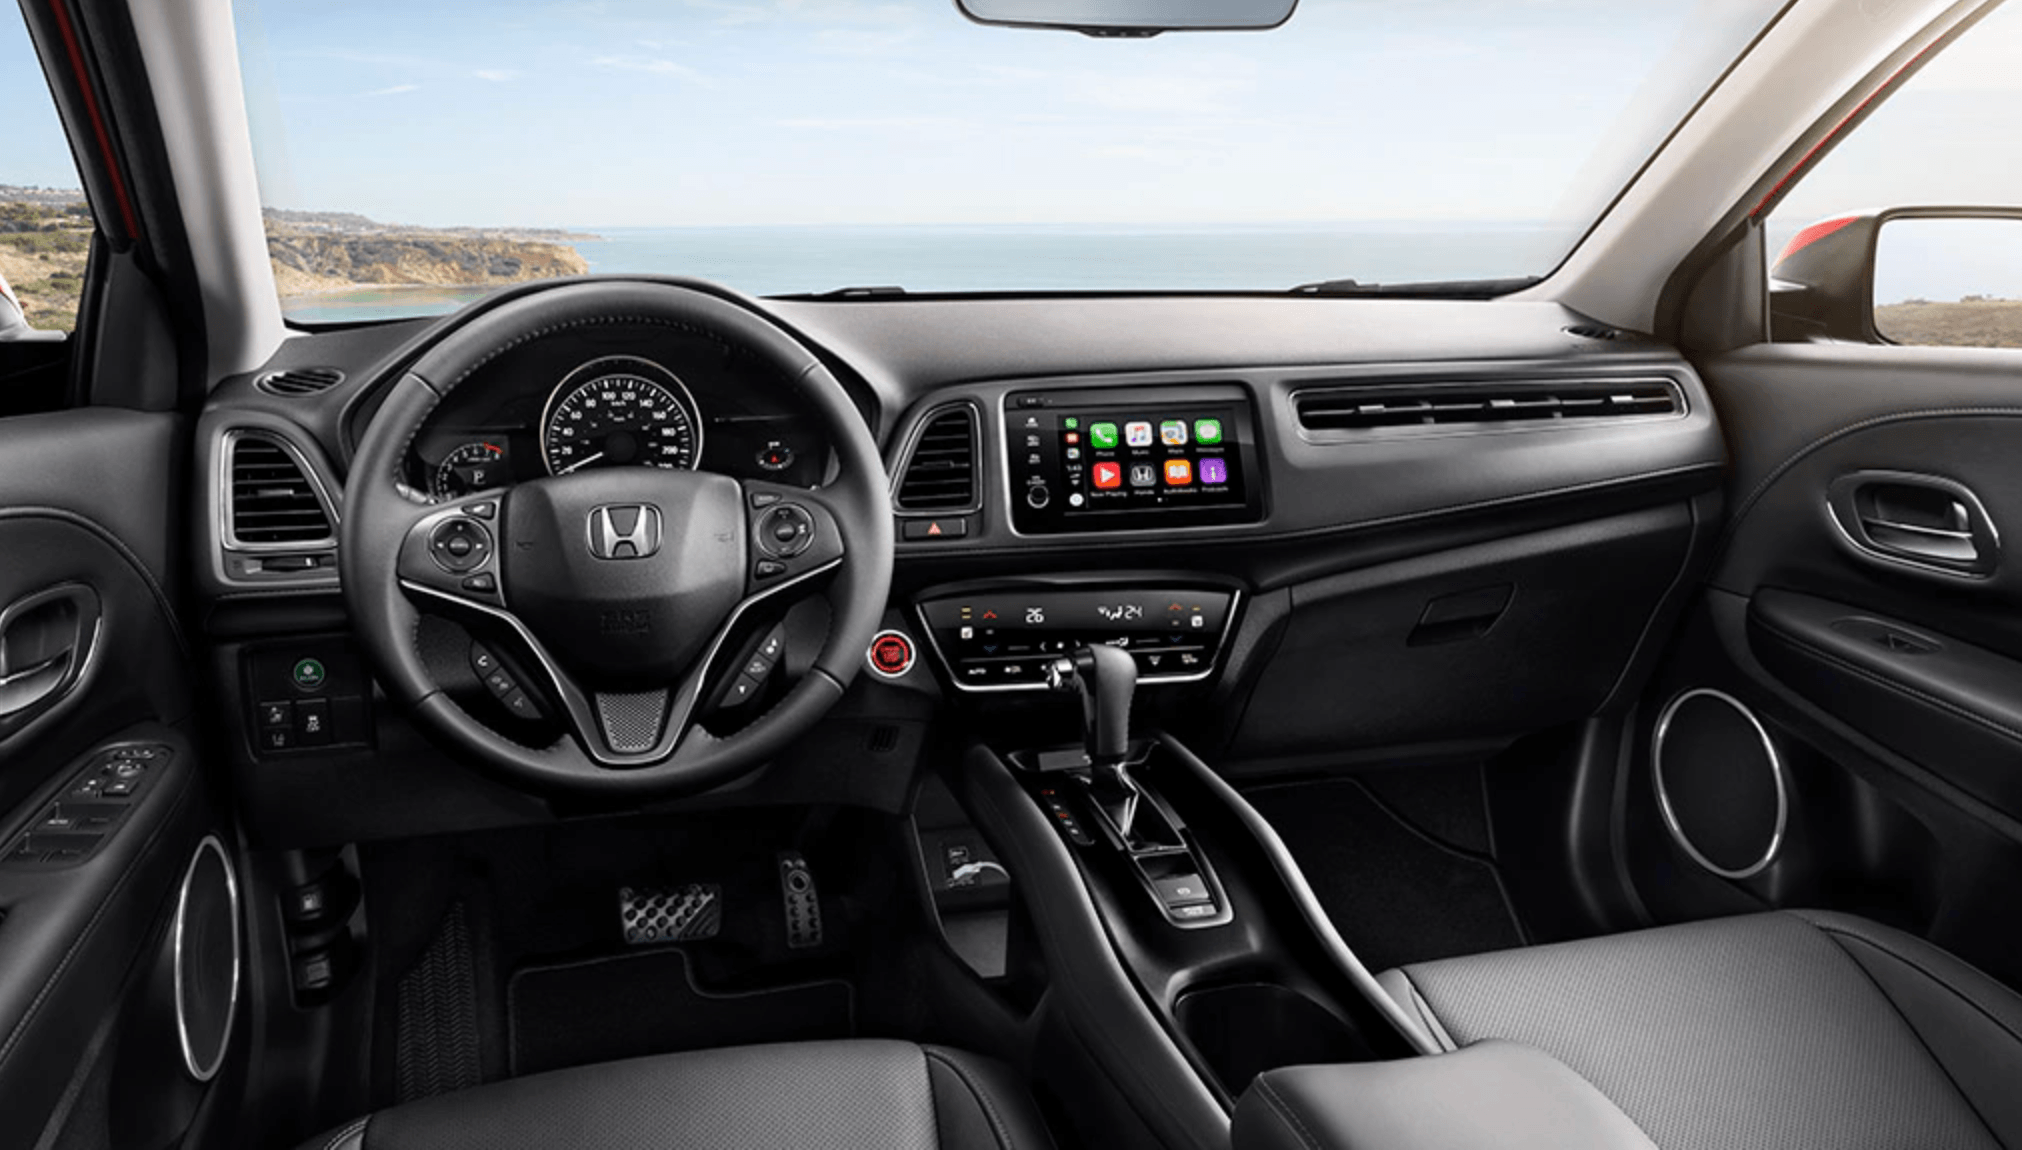 2020 Honda HR-V Technology at Richmond Hill Honda in Toronto and the GTA